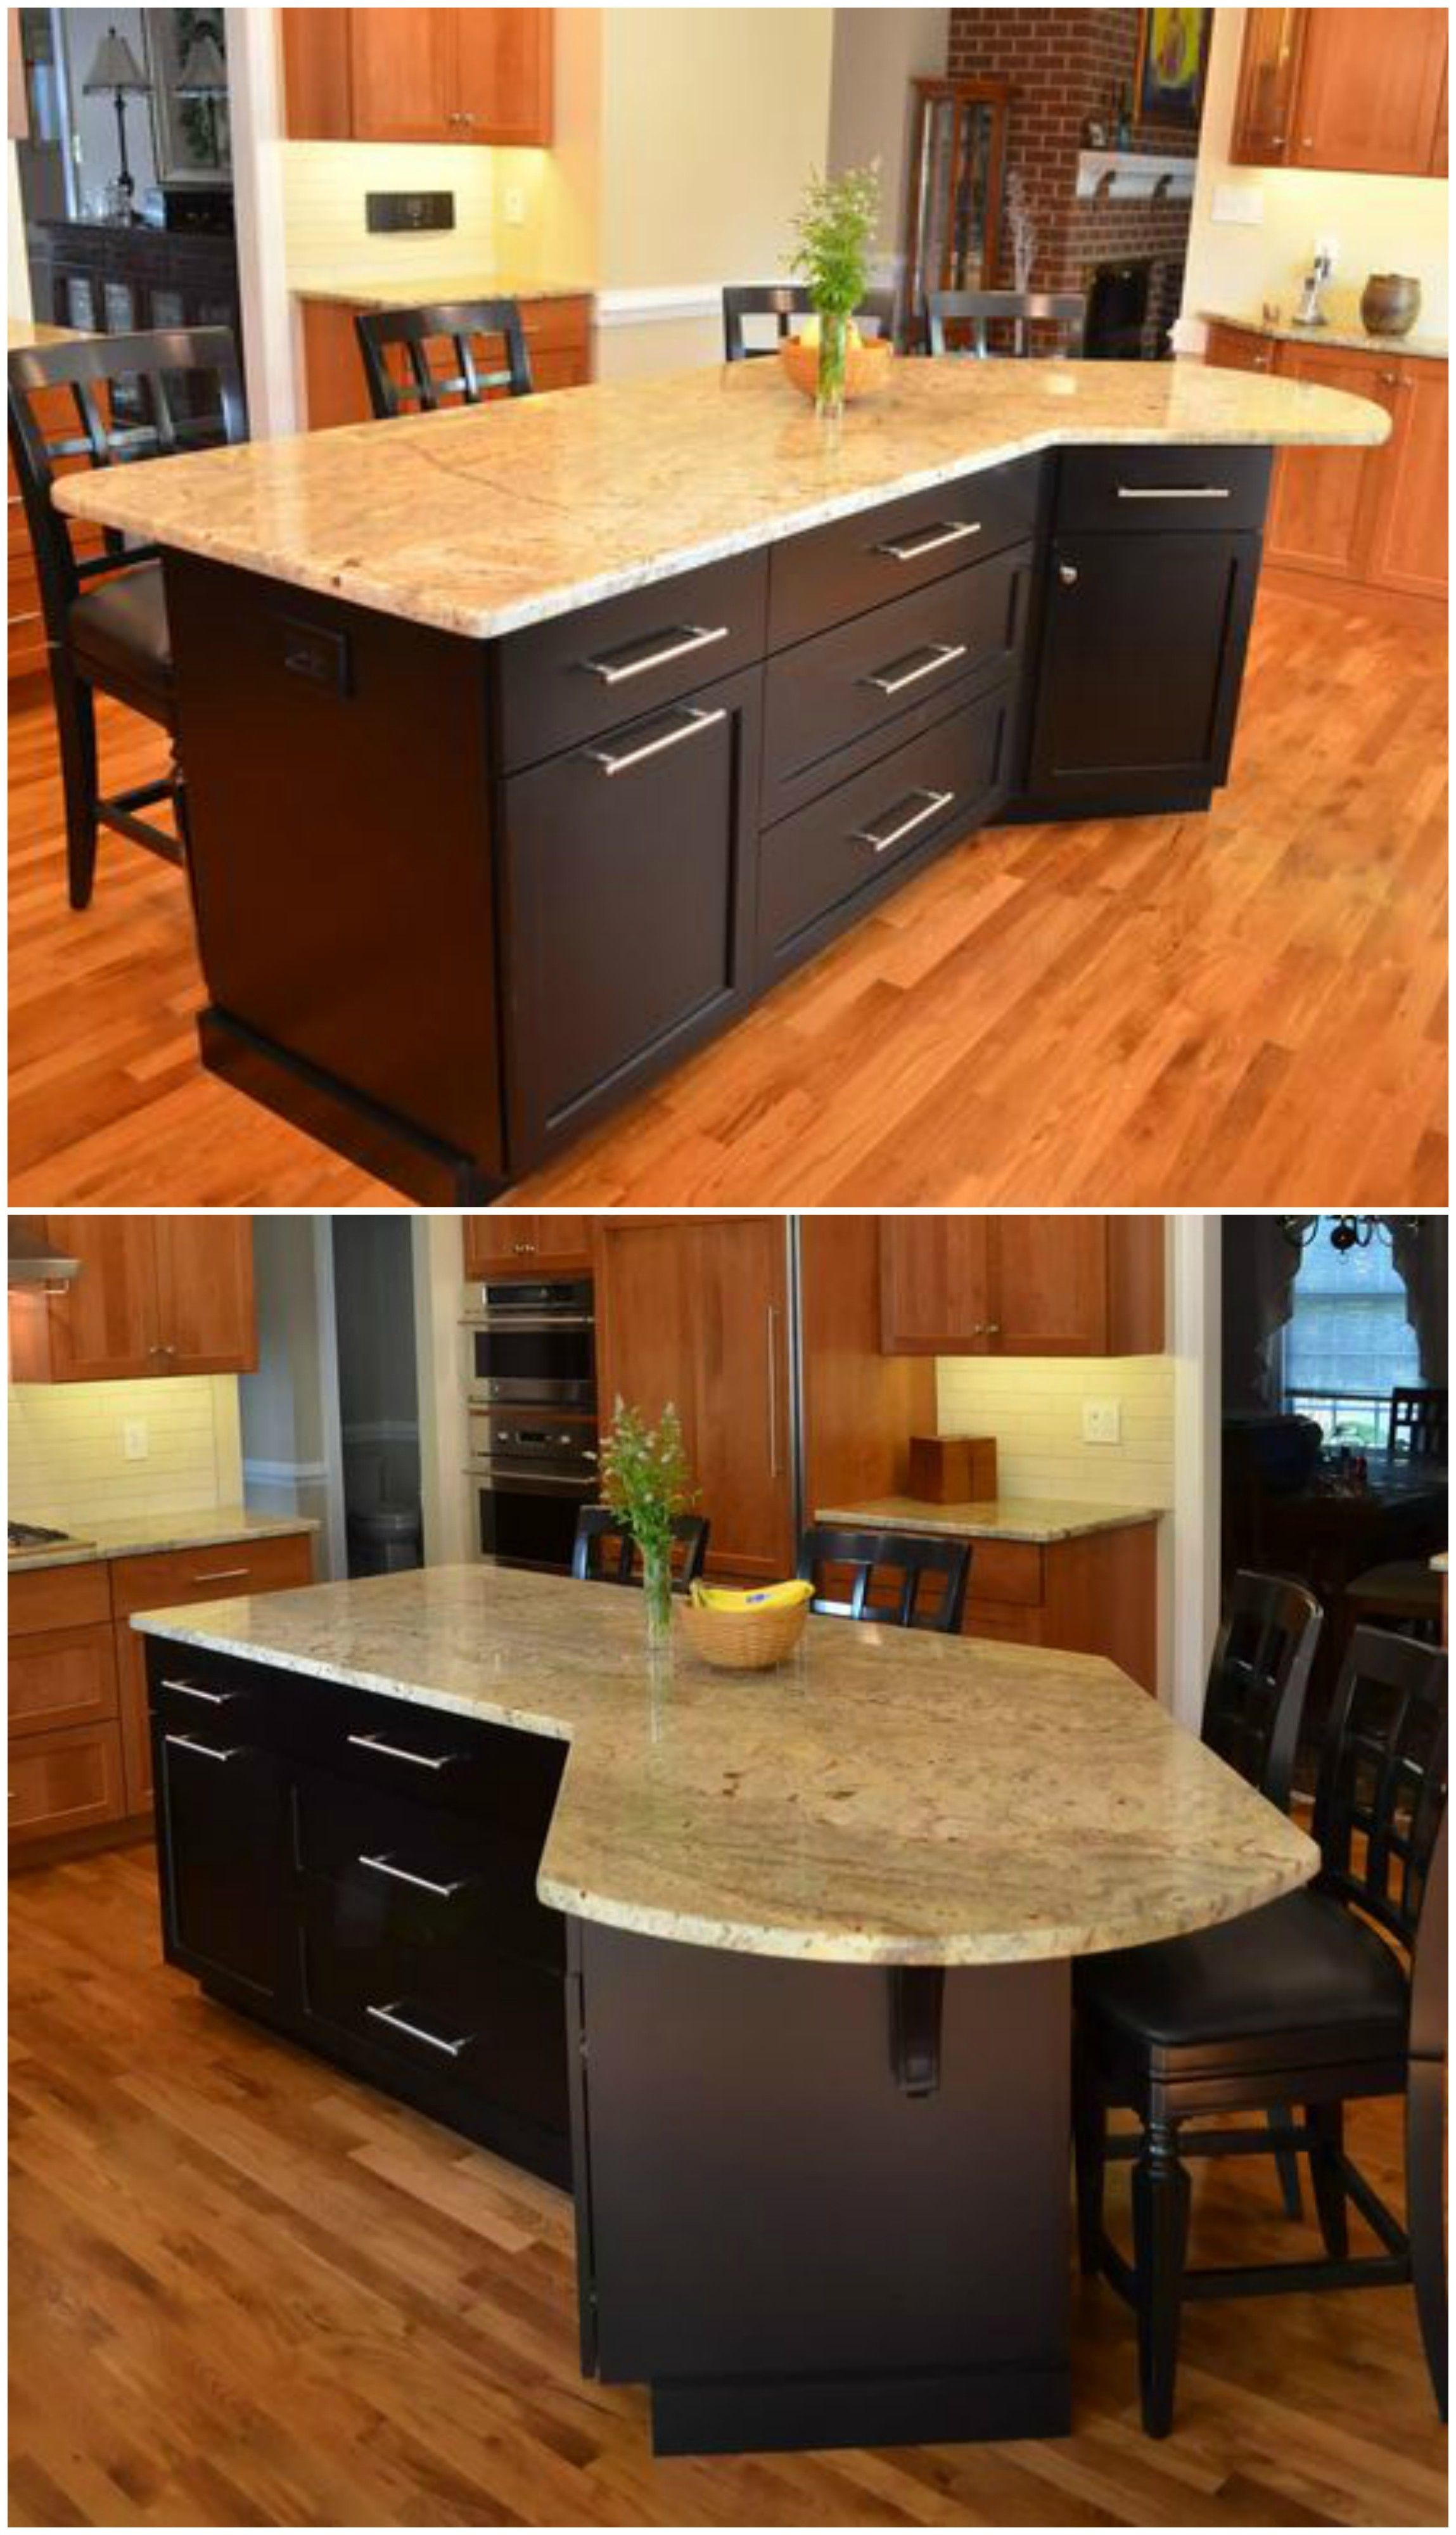 L Shaped Island with Seating, Black, Light Marbled